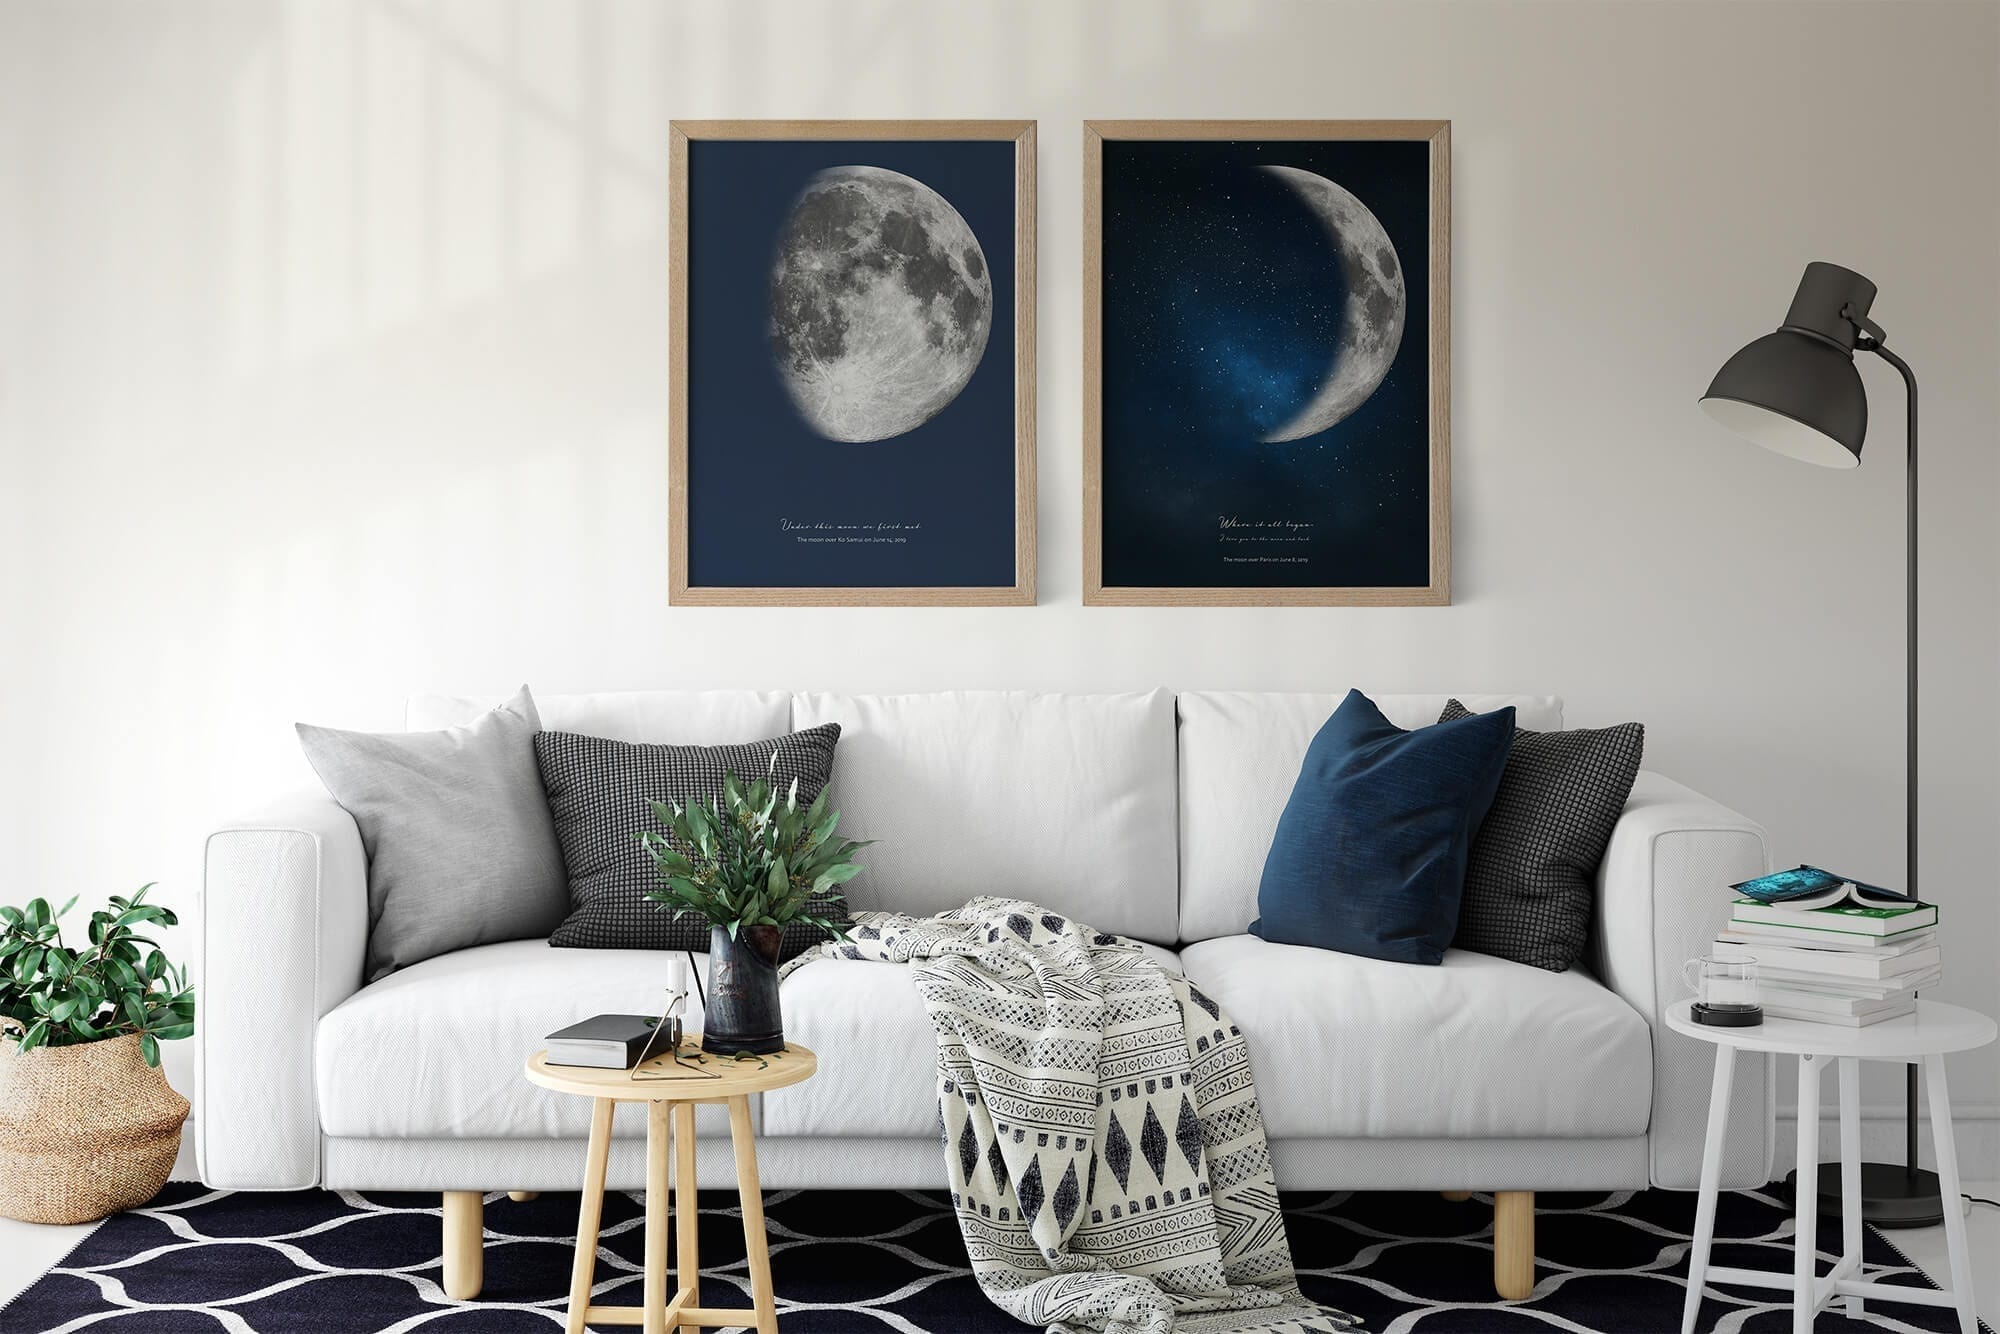 Framed moon phases print in minimalistic apartment